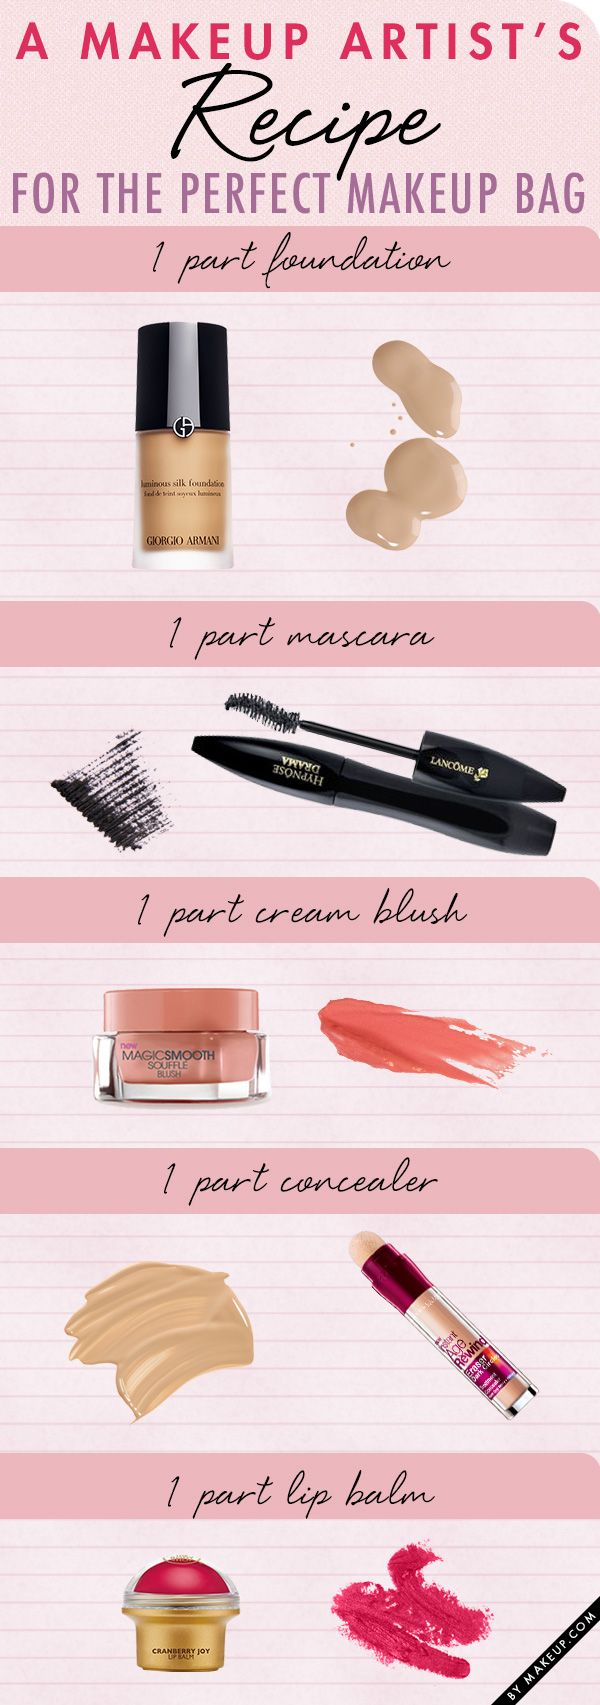 Love all of these products!